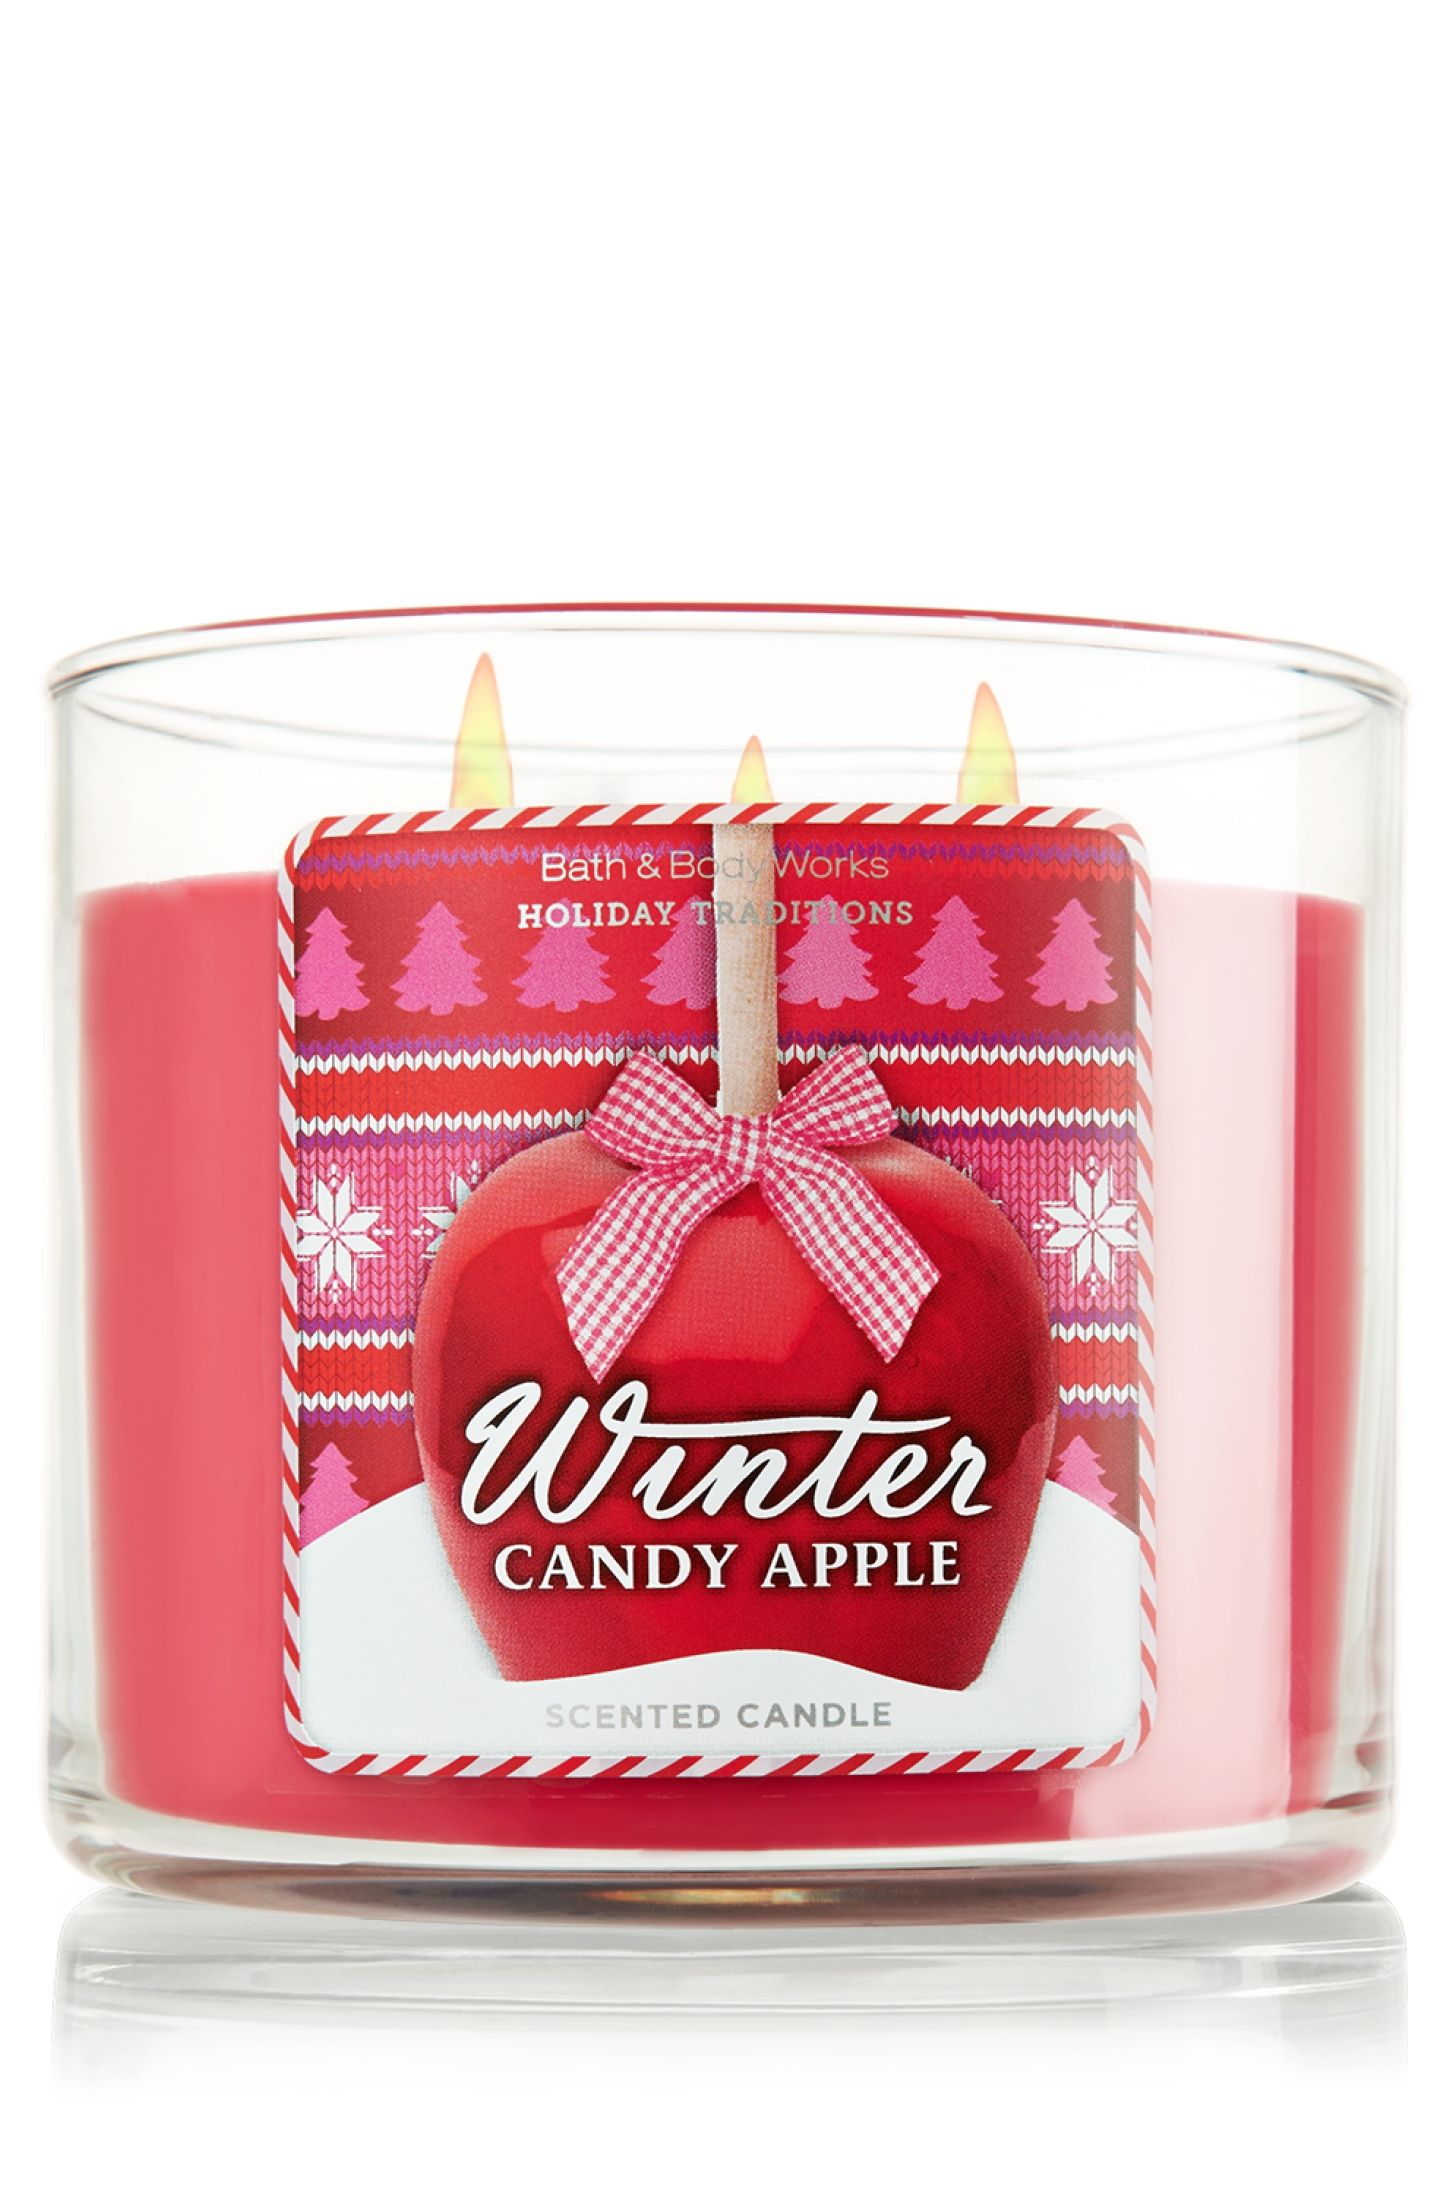 Bath and body works holiday scents - New Holiday Traditions Candles From Bath Body Works Winter Candy Apple Is By Far